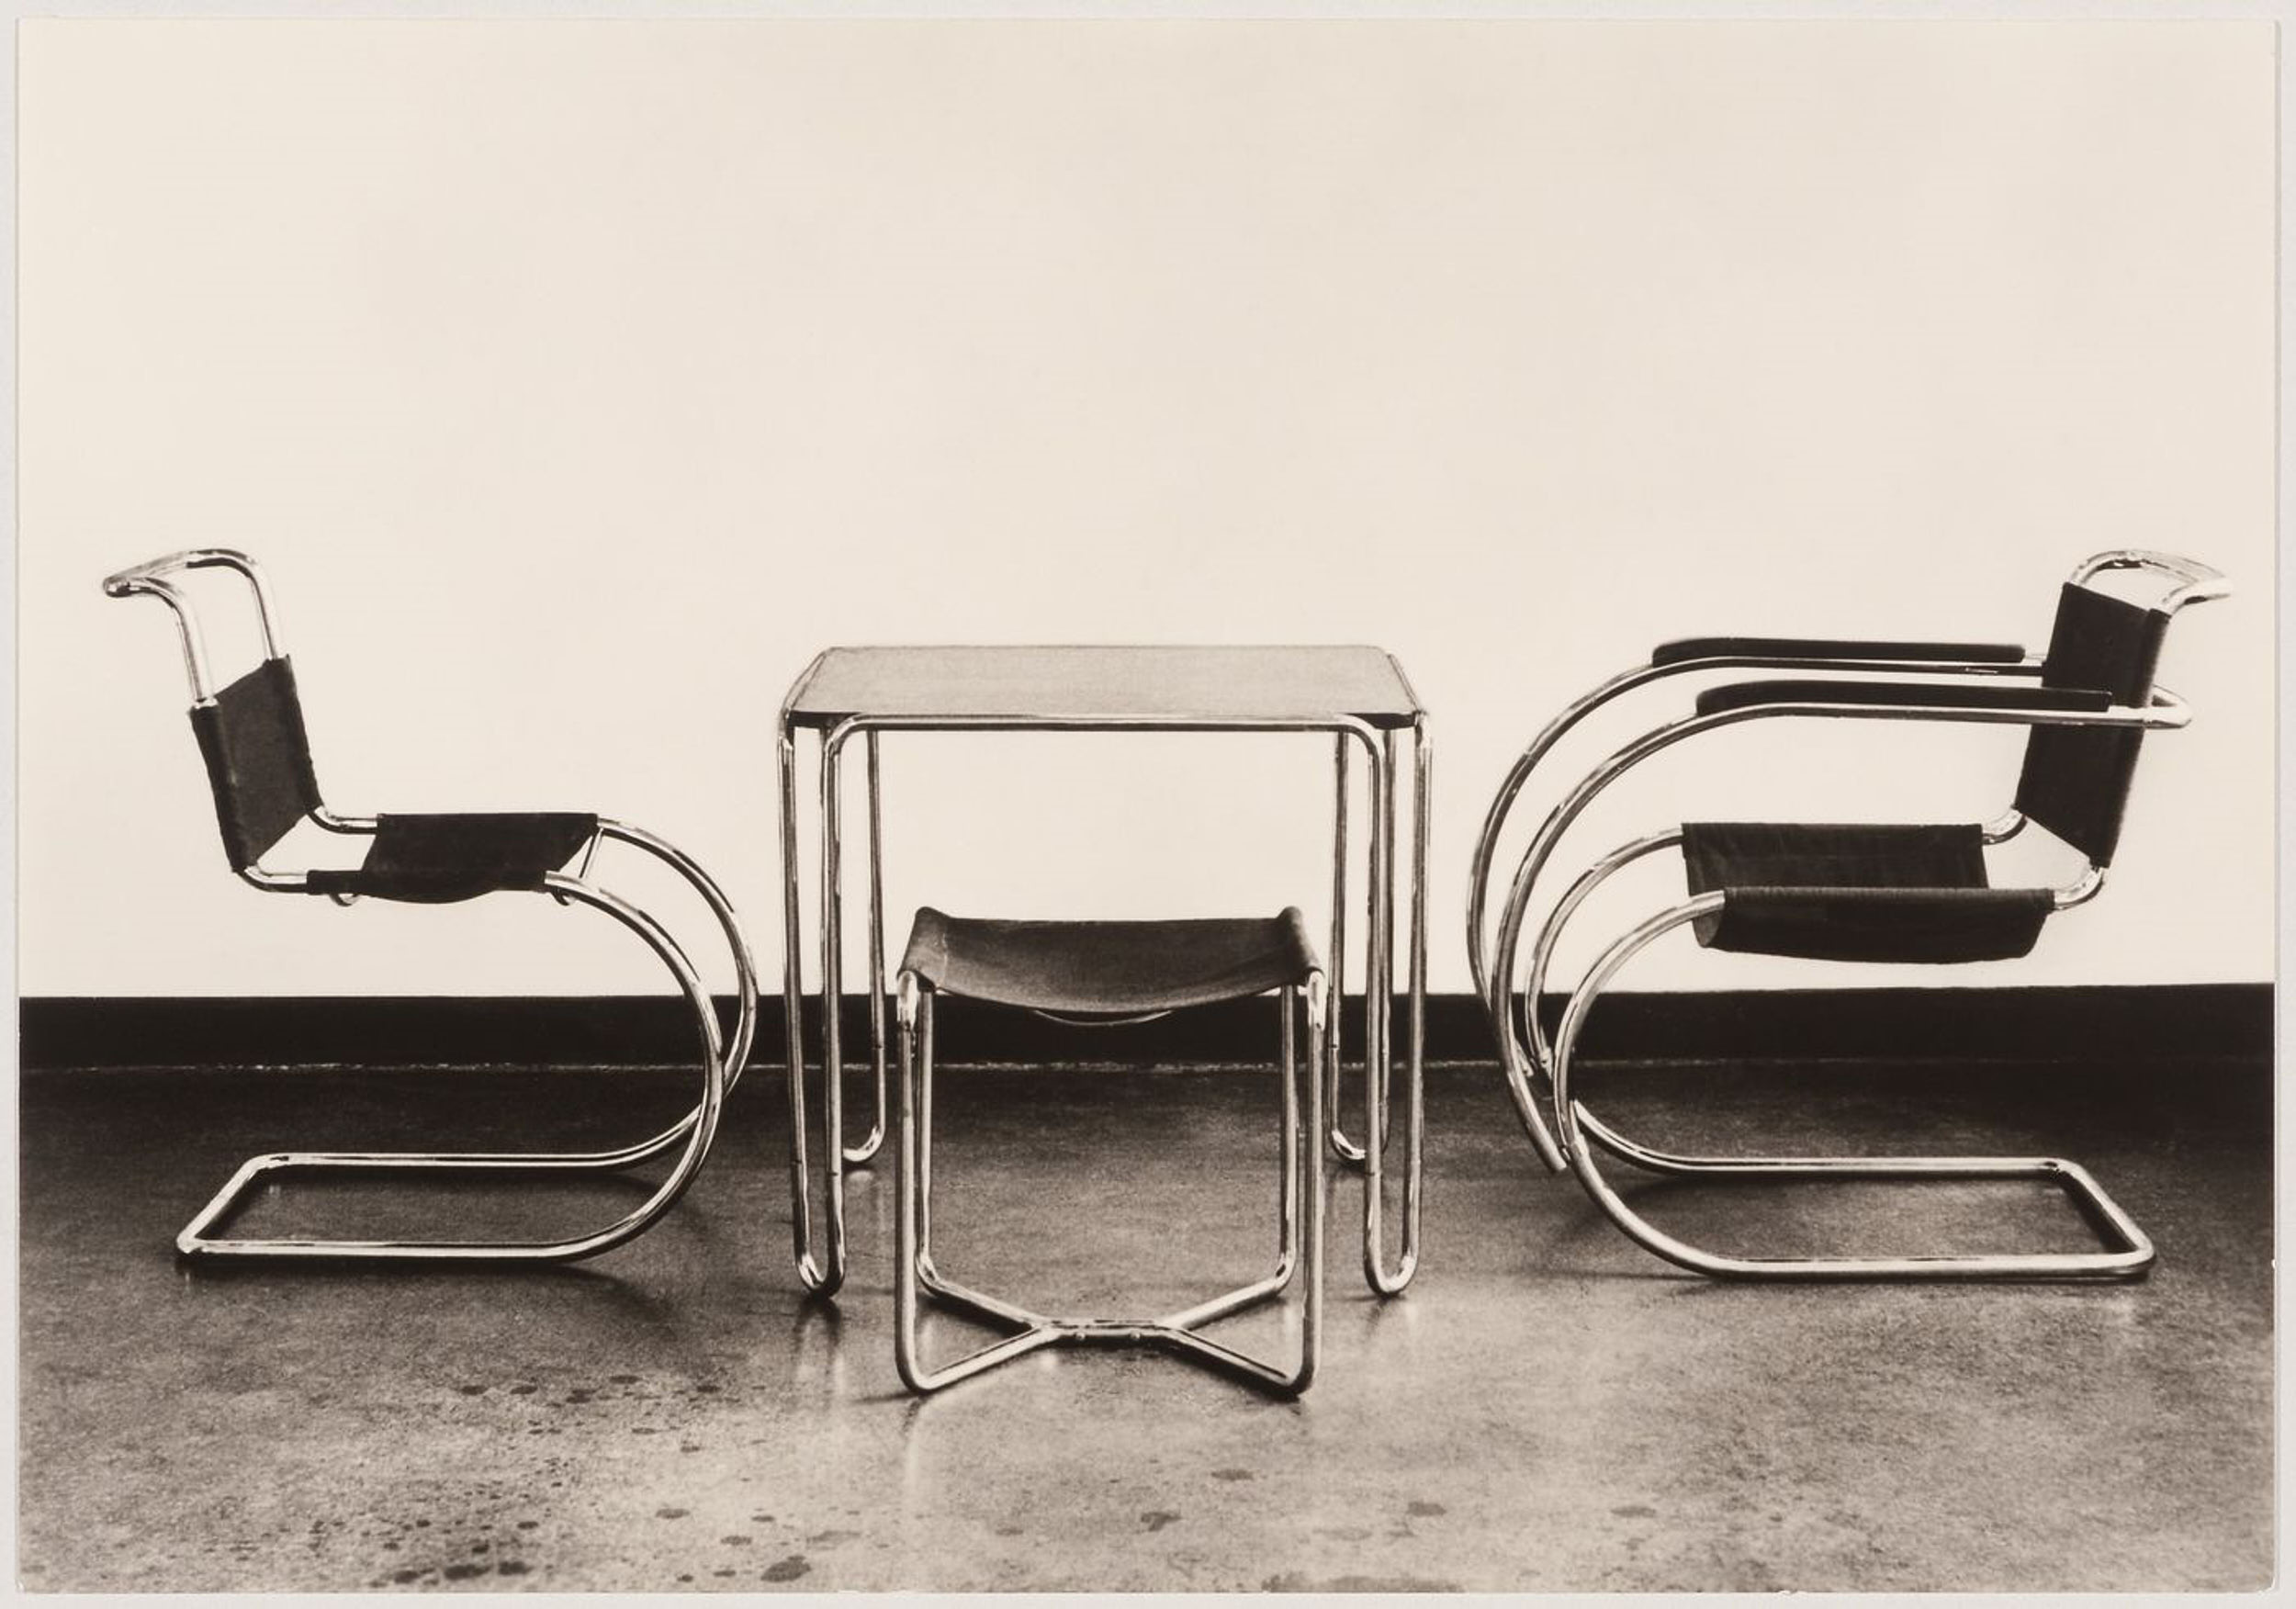 Interior view of the Bauhaus building showing two chairs designed by Mies van der Rohe and a table and stool designed by Marcel Breuer, Dessau, Germany — Collection Centre Canadien d'Architecture/ Canadian Centre for Architecture, Montréal